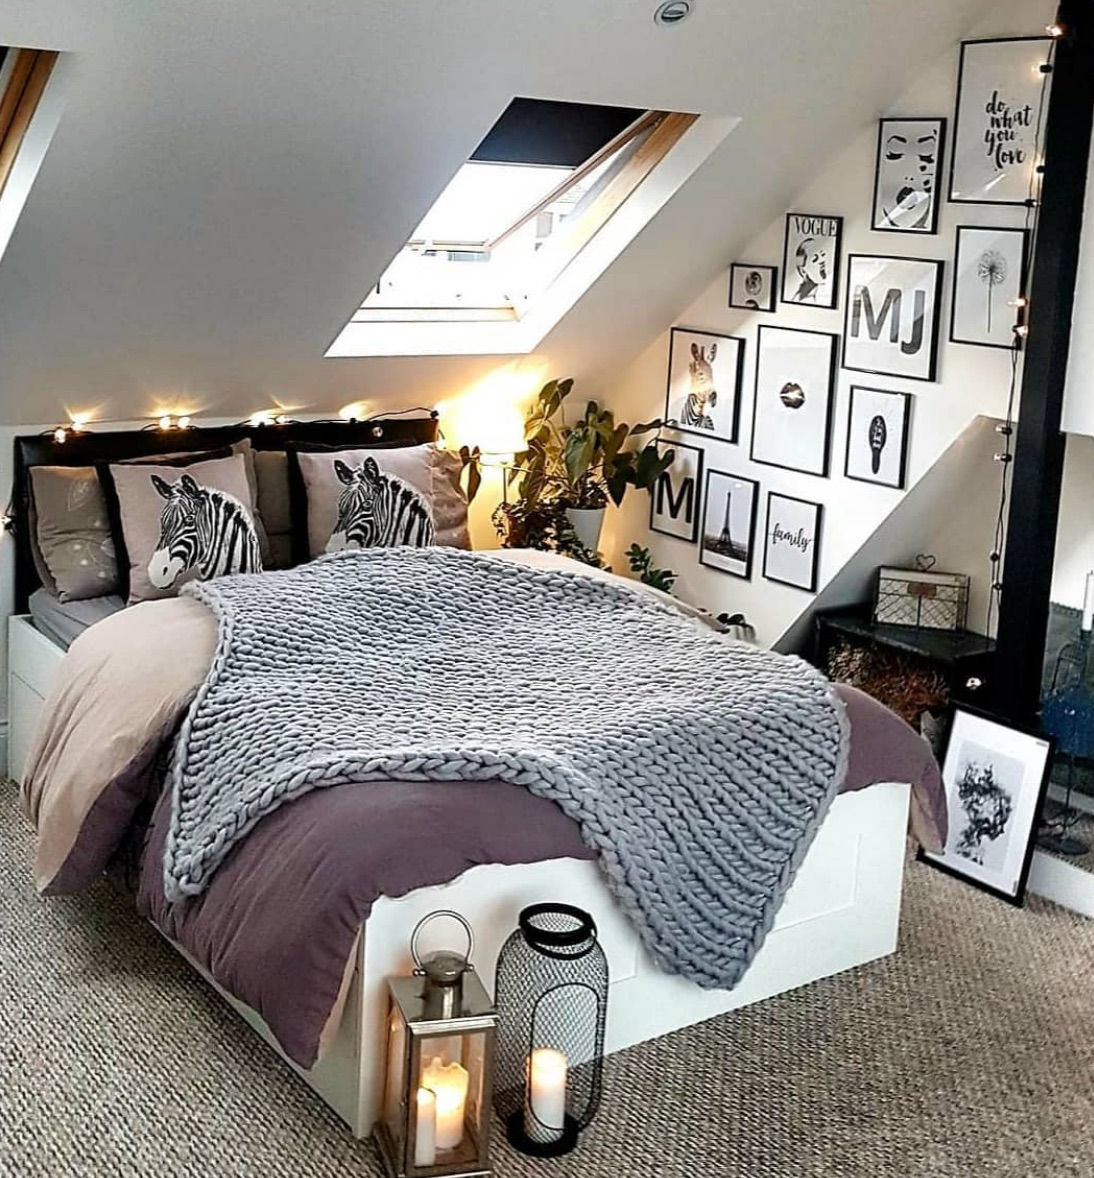 Loft-style black and white bedroom